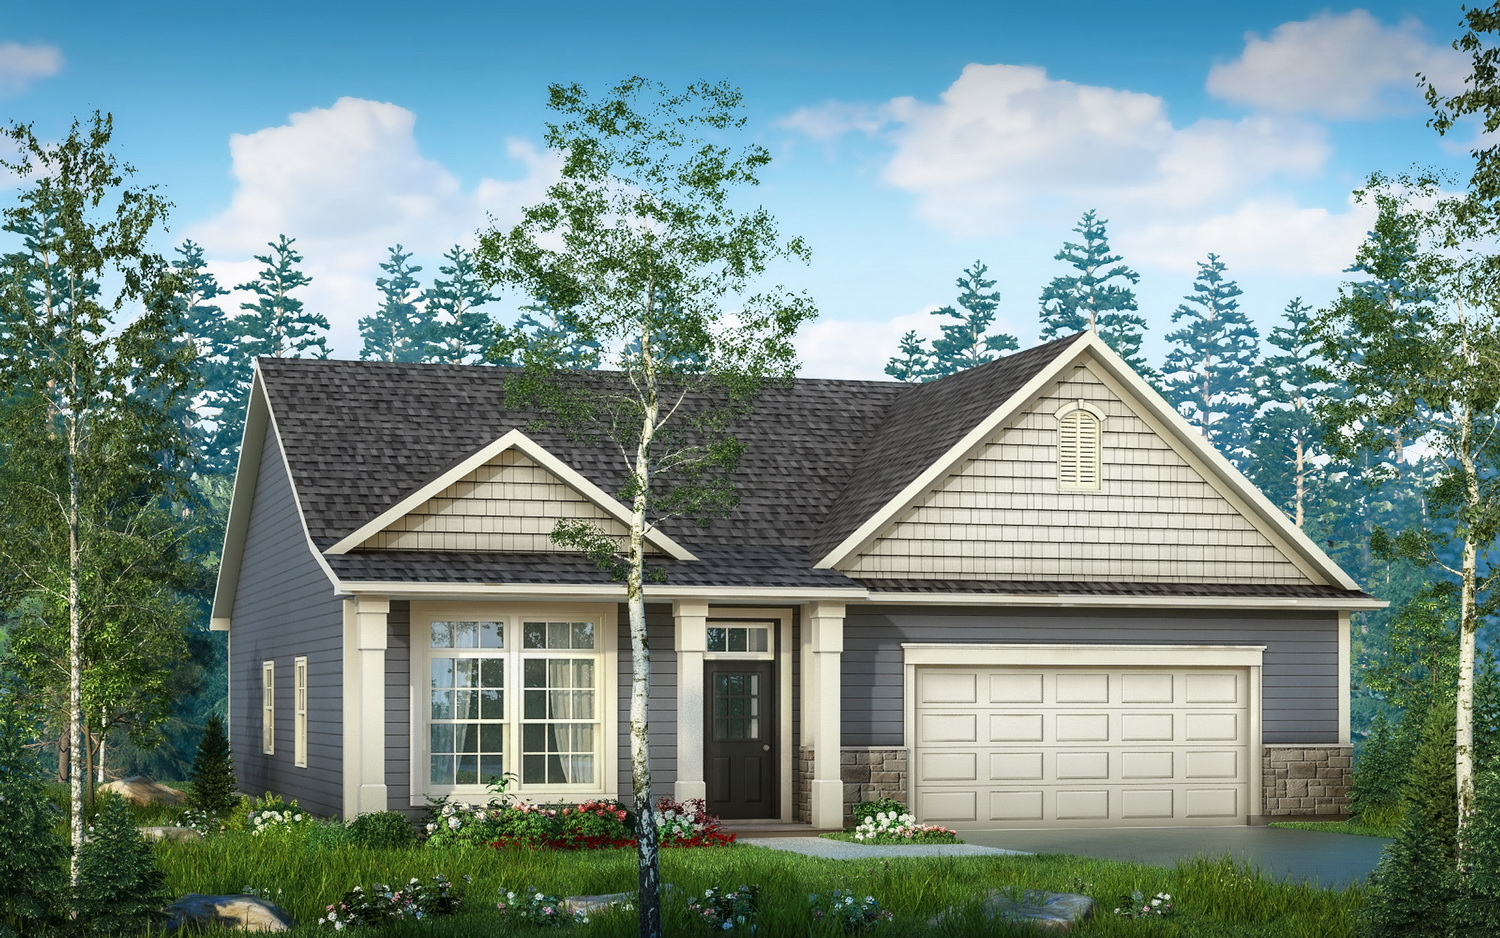 homestead home designs. The Homestead Home Designs  Synergy Homes NS